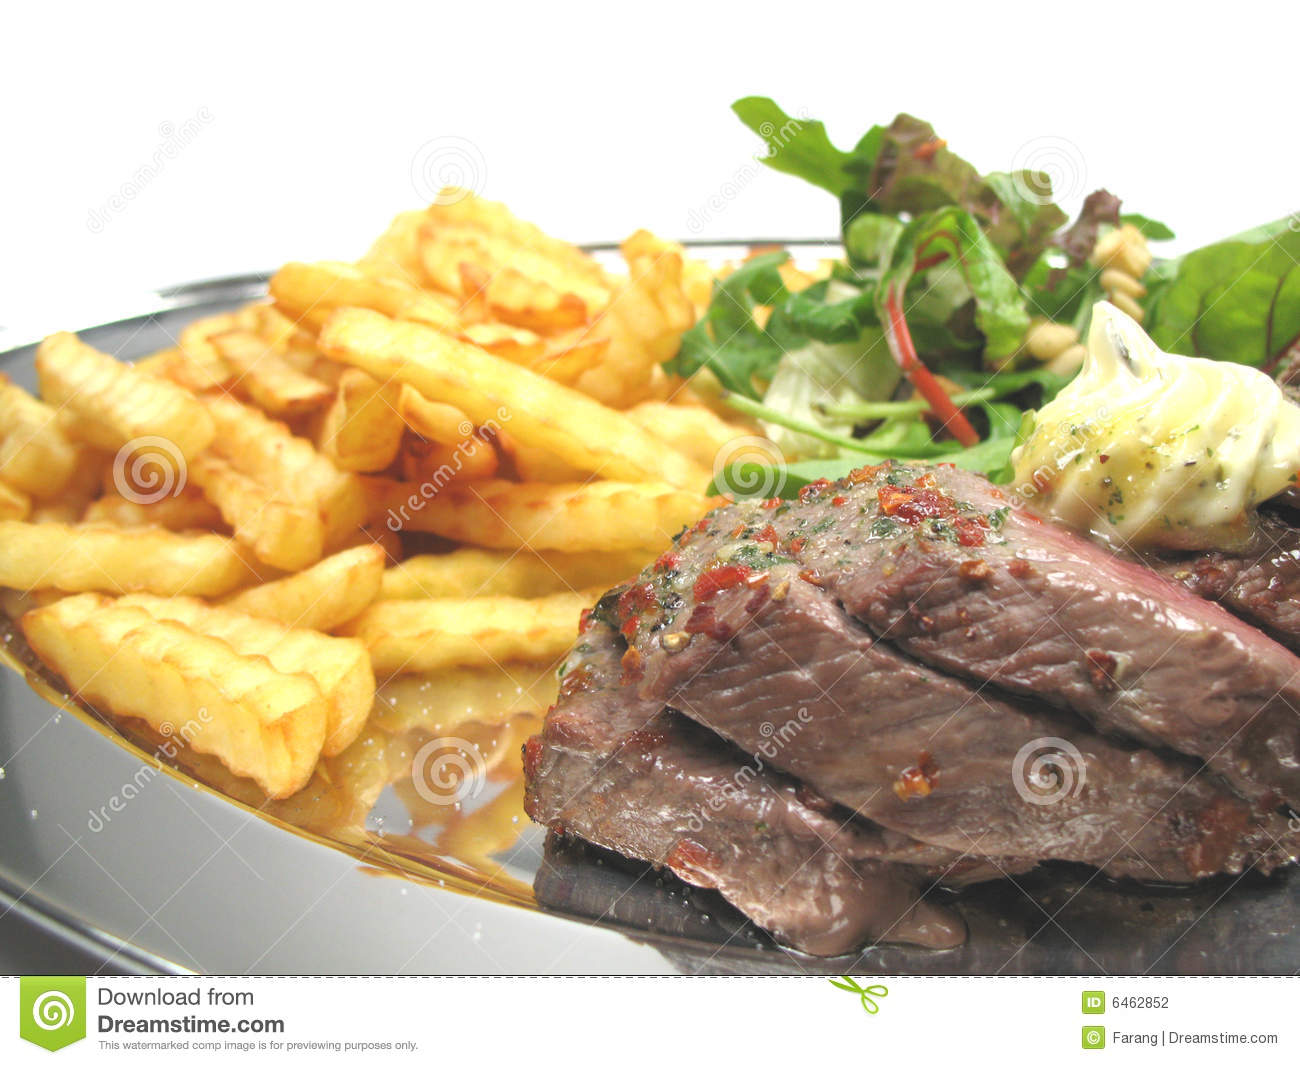 Chips steak